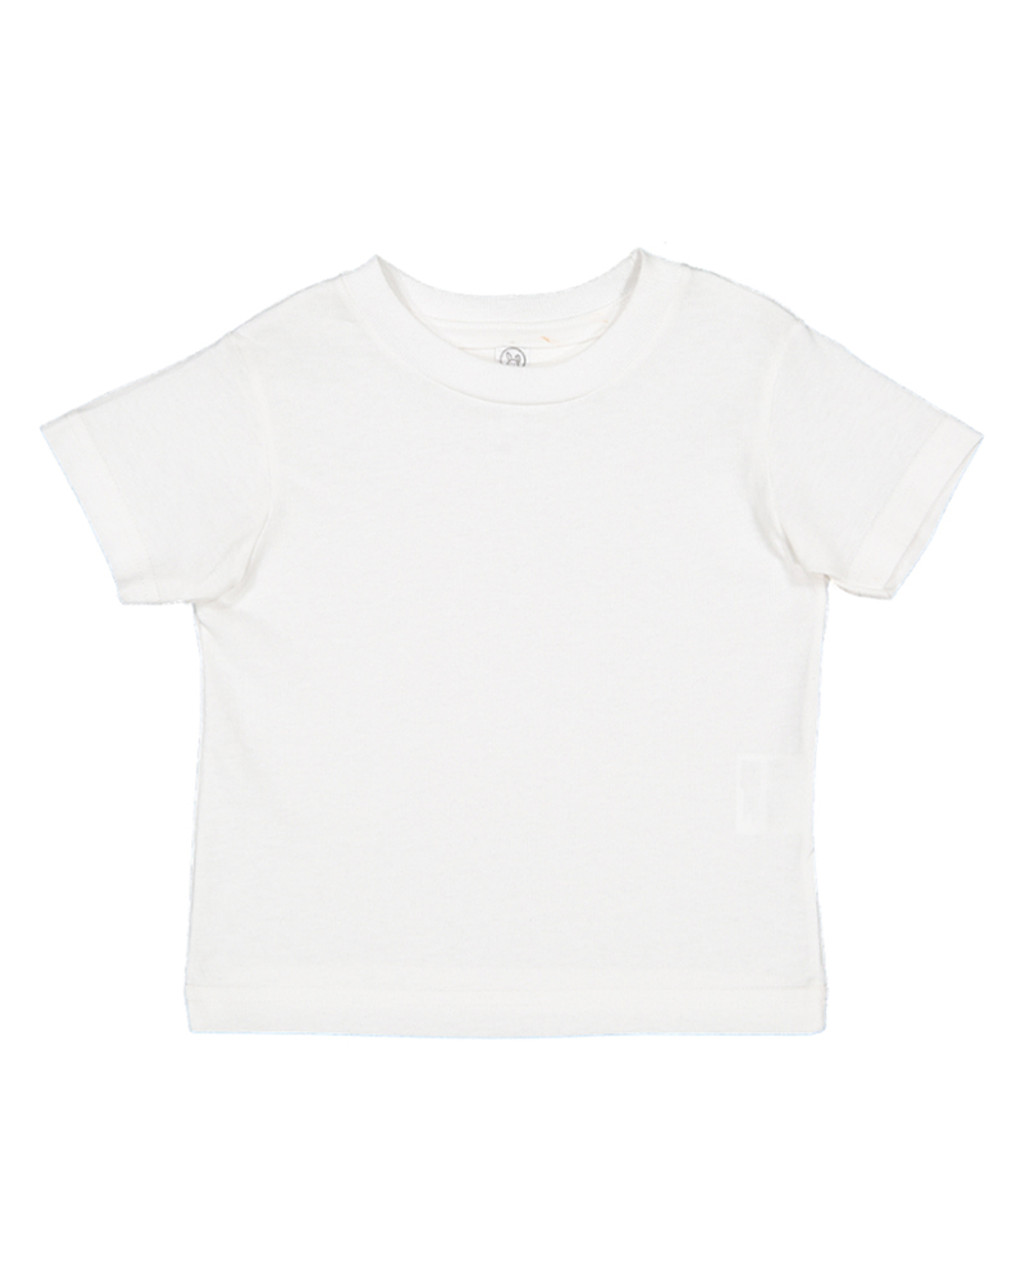 White - 3321 Rabbit Skins Toddler Fine Jersey T-Shirt  | BlankClothing.ca